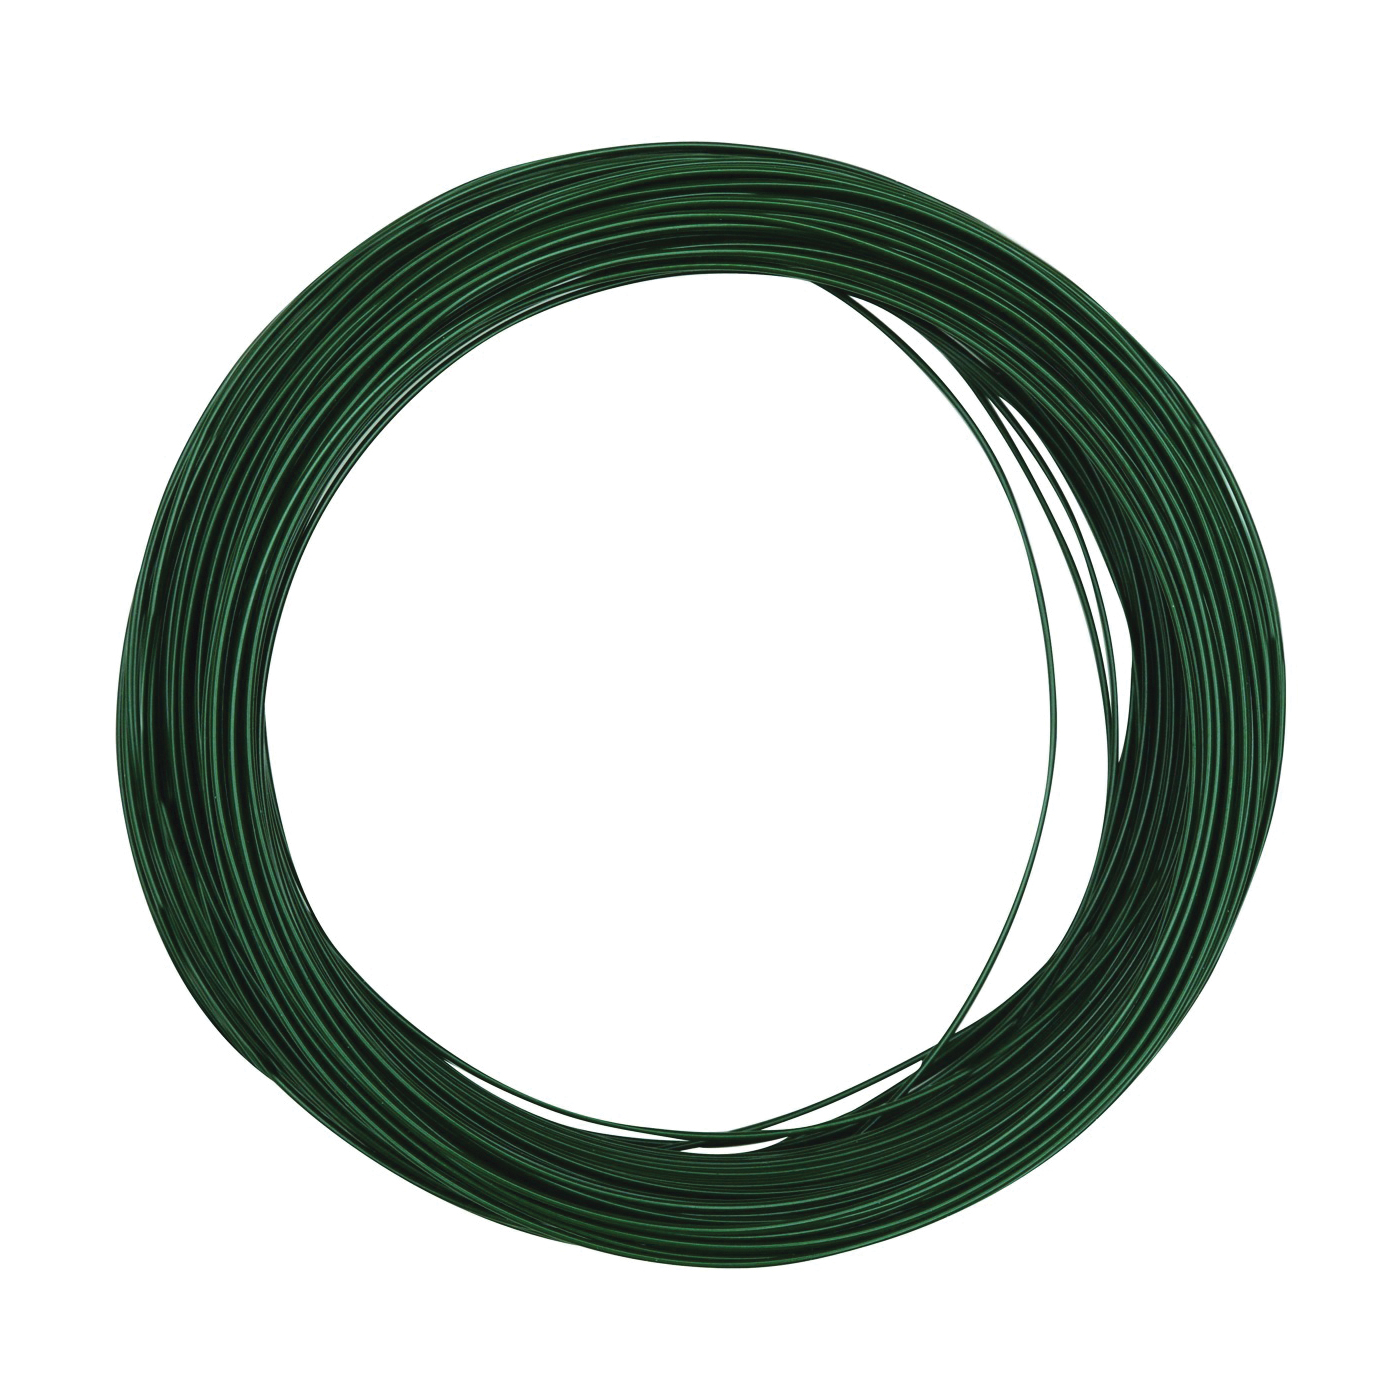 Picture of National Hardware N274-985 Floral Wire, 100 ft L, Steel, Green